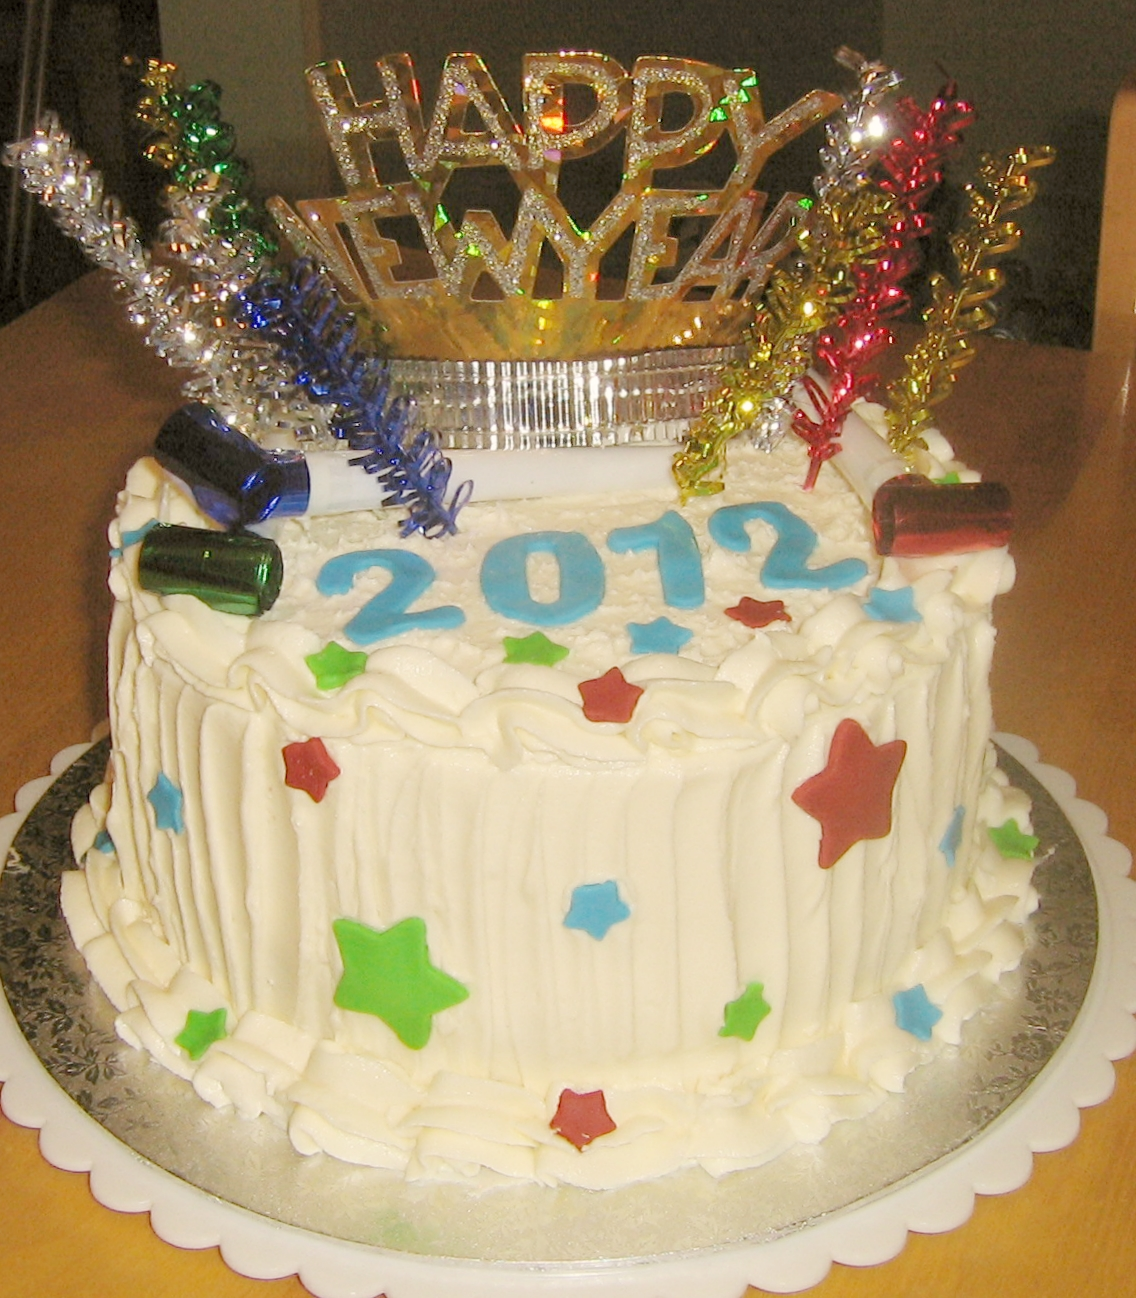 New Year's Eve Cake